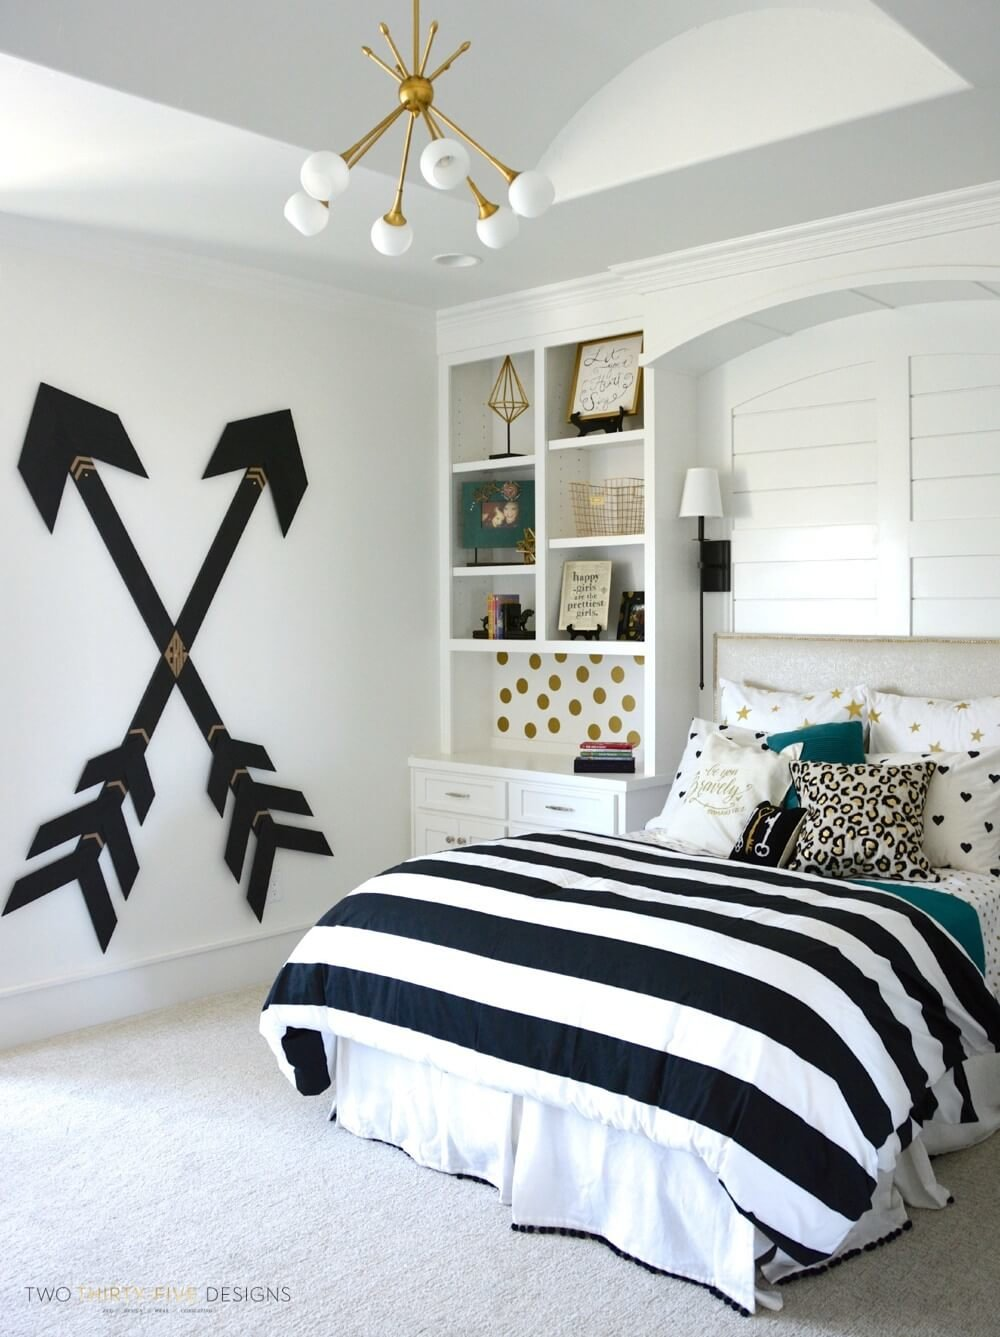 65+ Cute Teenage Girl Bedroom Ideas That Will Blow Your Mind on Girls Bedroom Ideas  id=91206